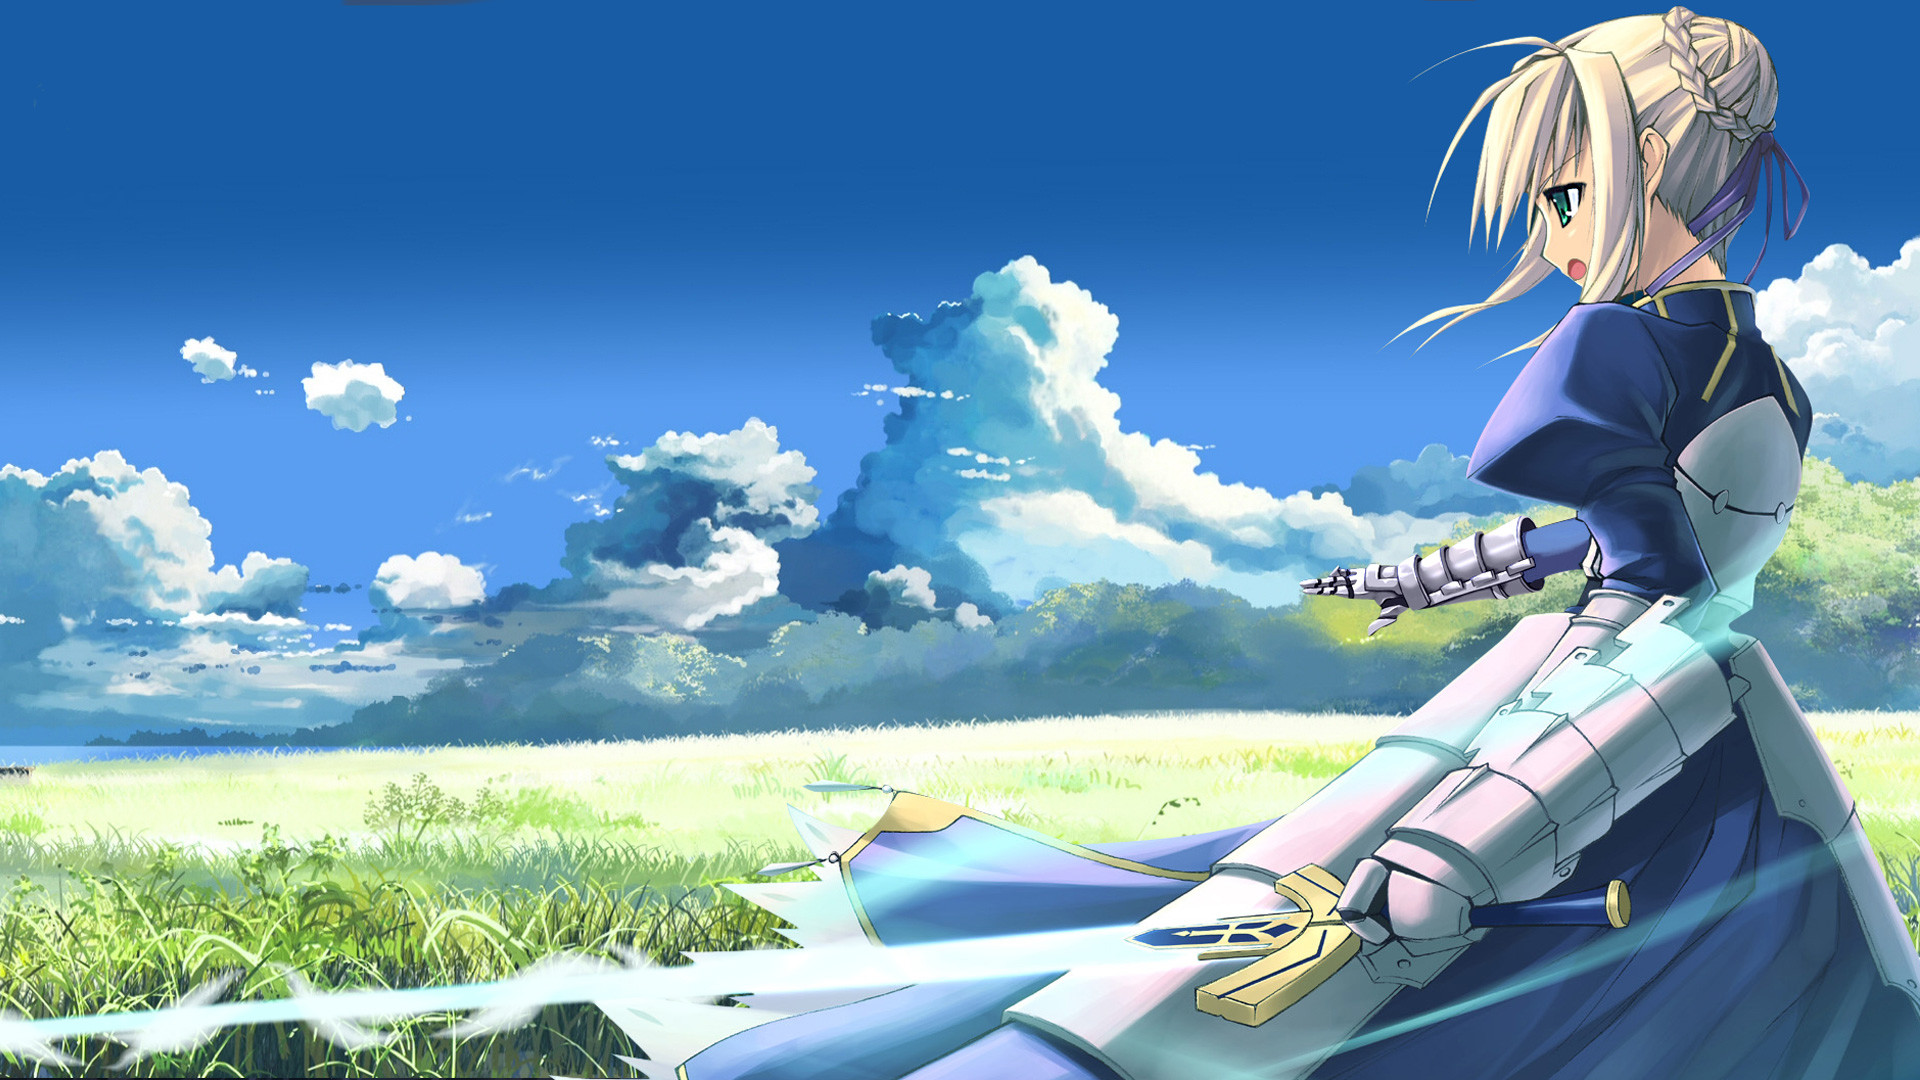 Anime Wallpapers 1920x1080 83 Pictures